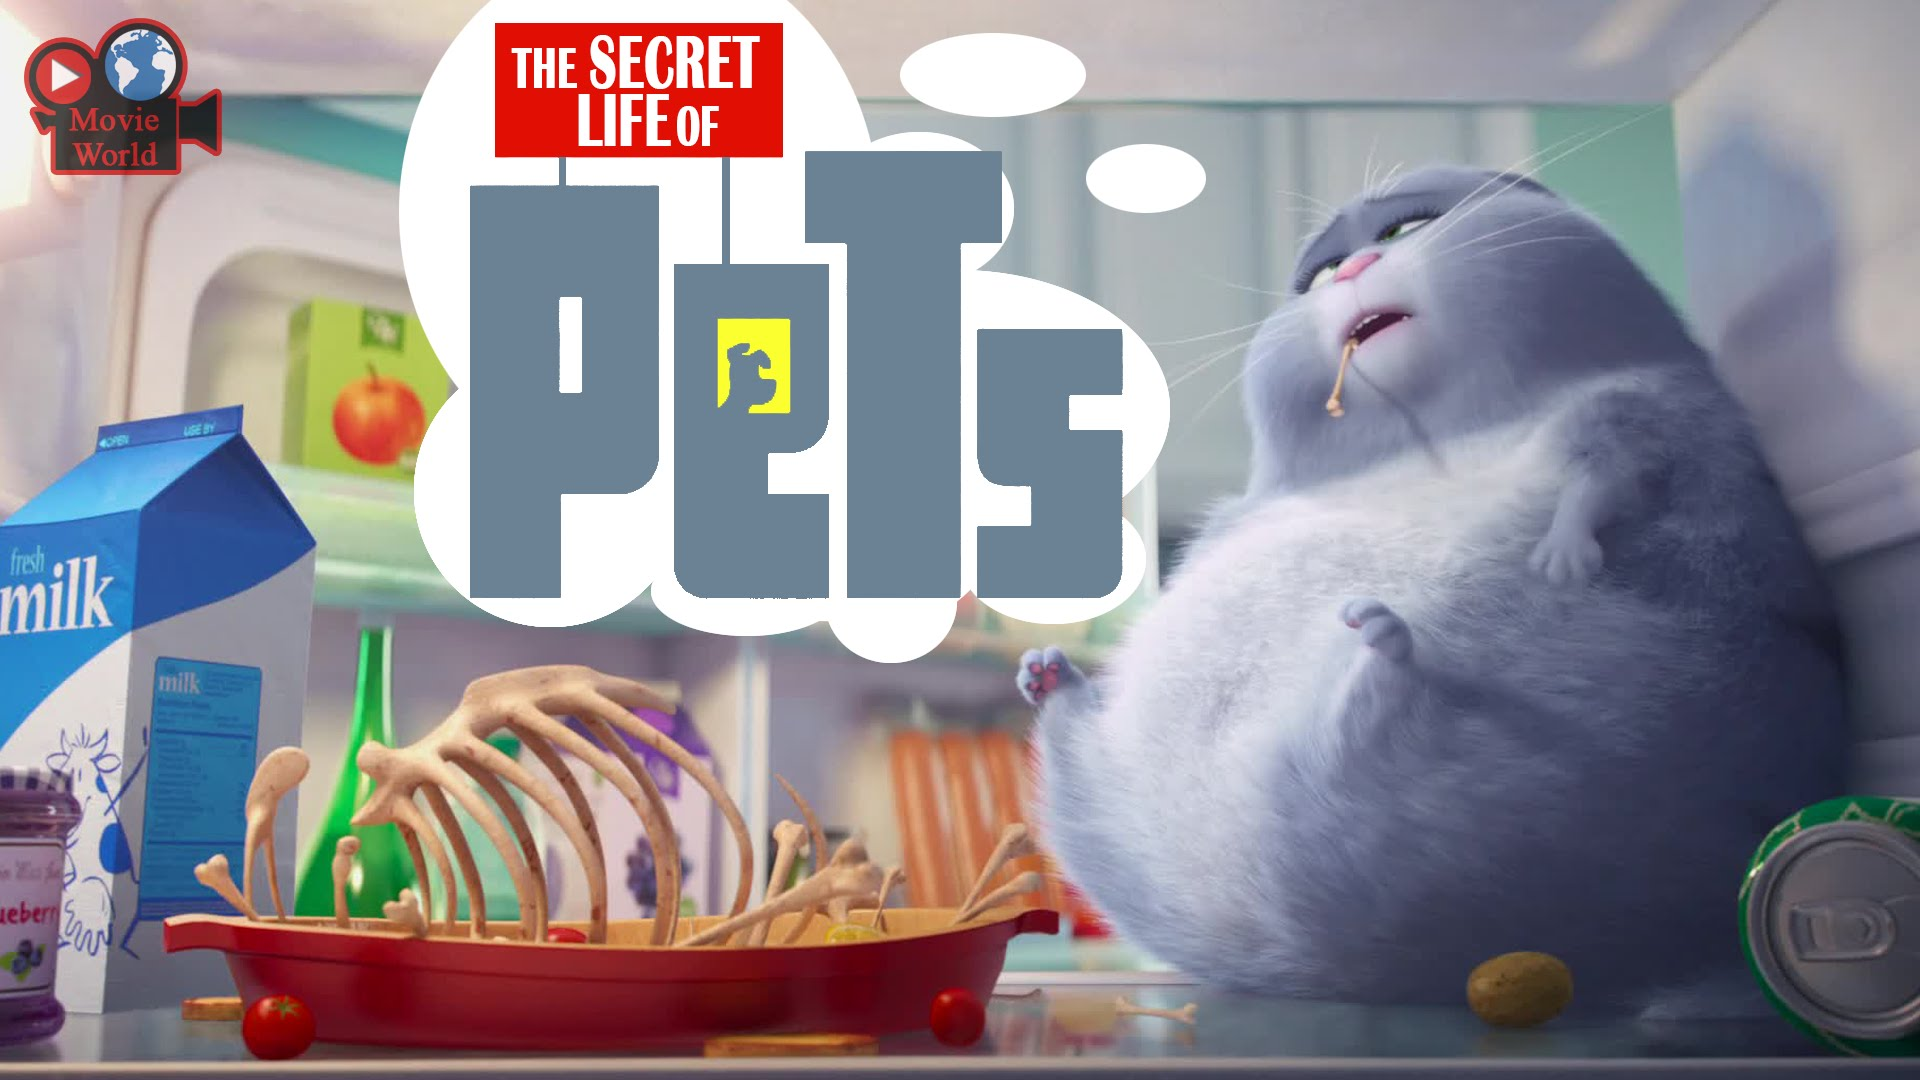 The Secret Life Of Pets Wallpaper Movie Trailers Wallpaper